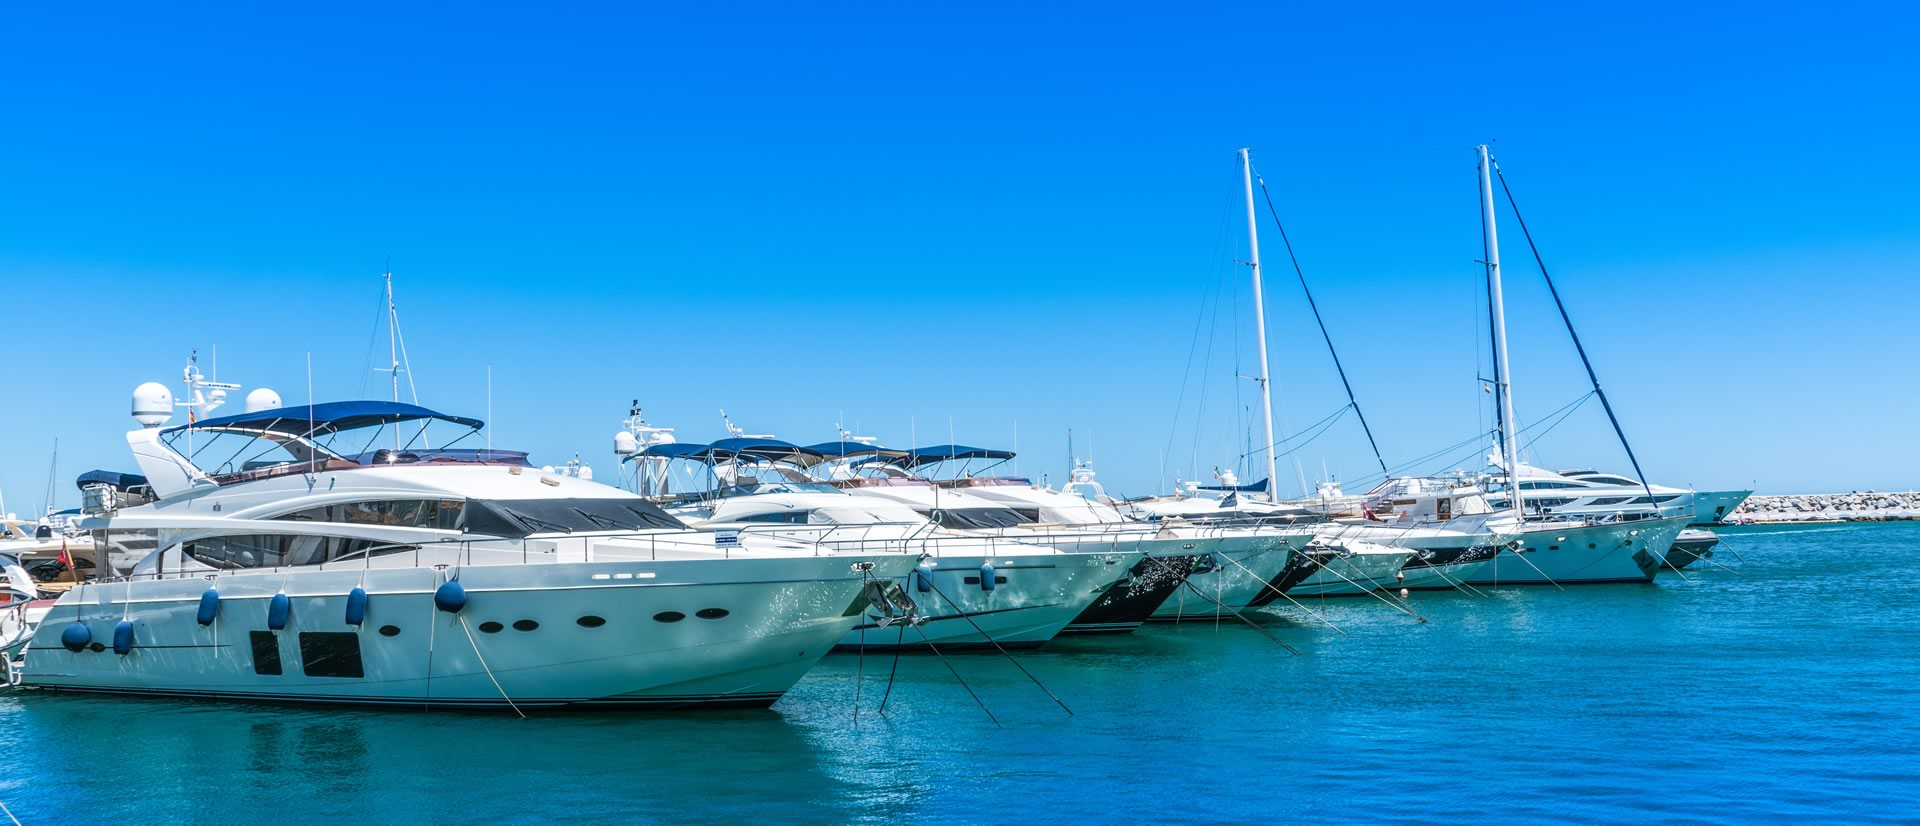 Extended Warranty for Your Marine Leisure Products